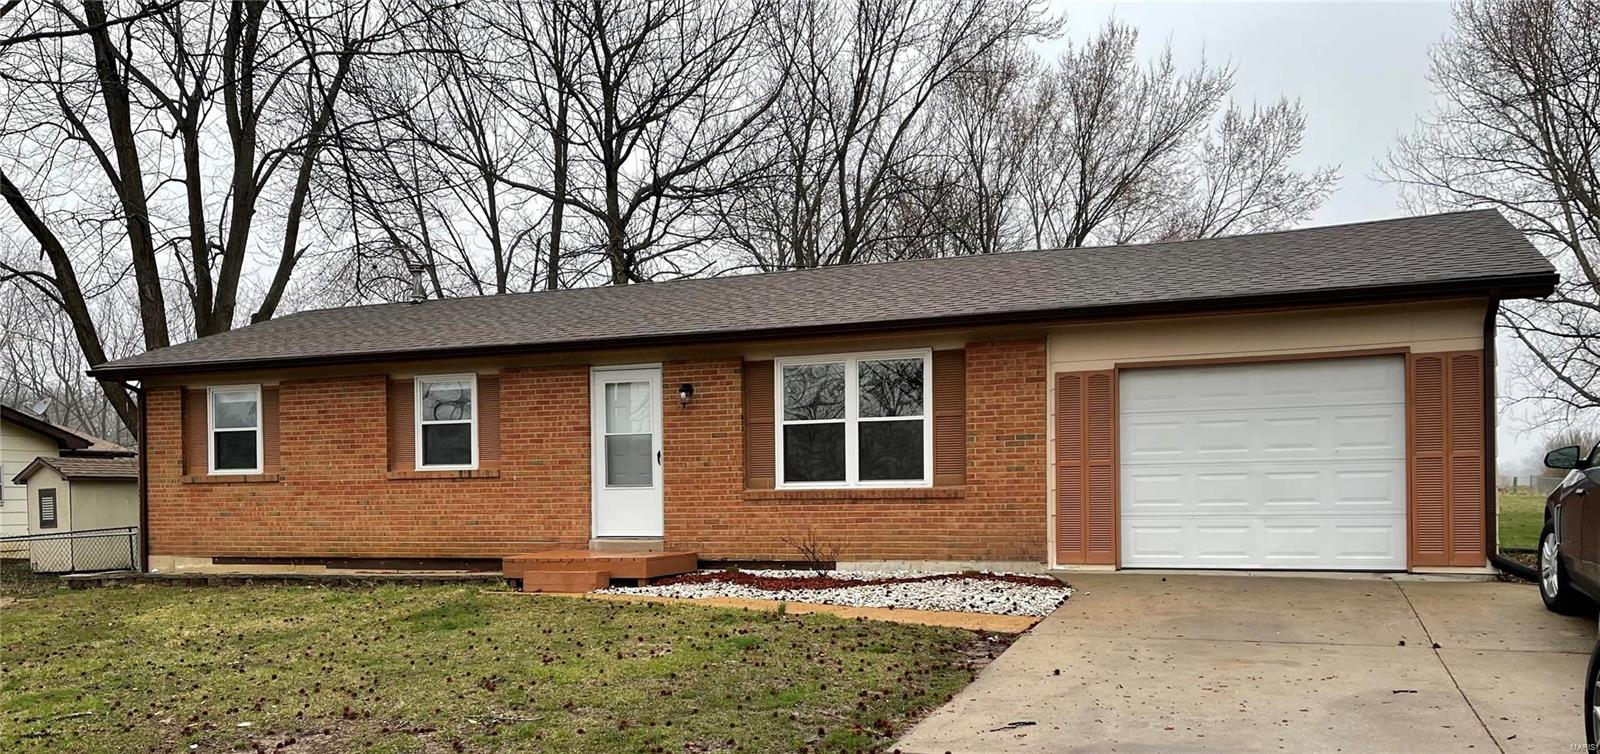 31 Pinewood Property Photo - Winfield, MO real estate listing